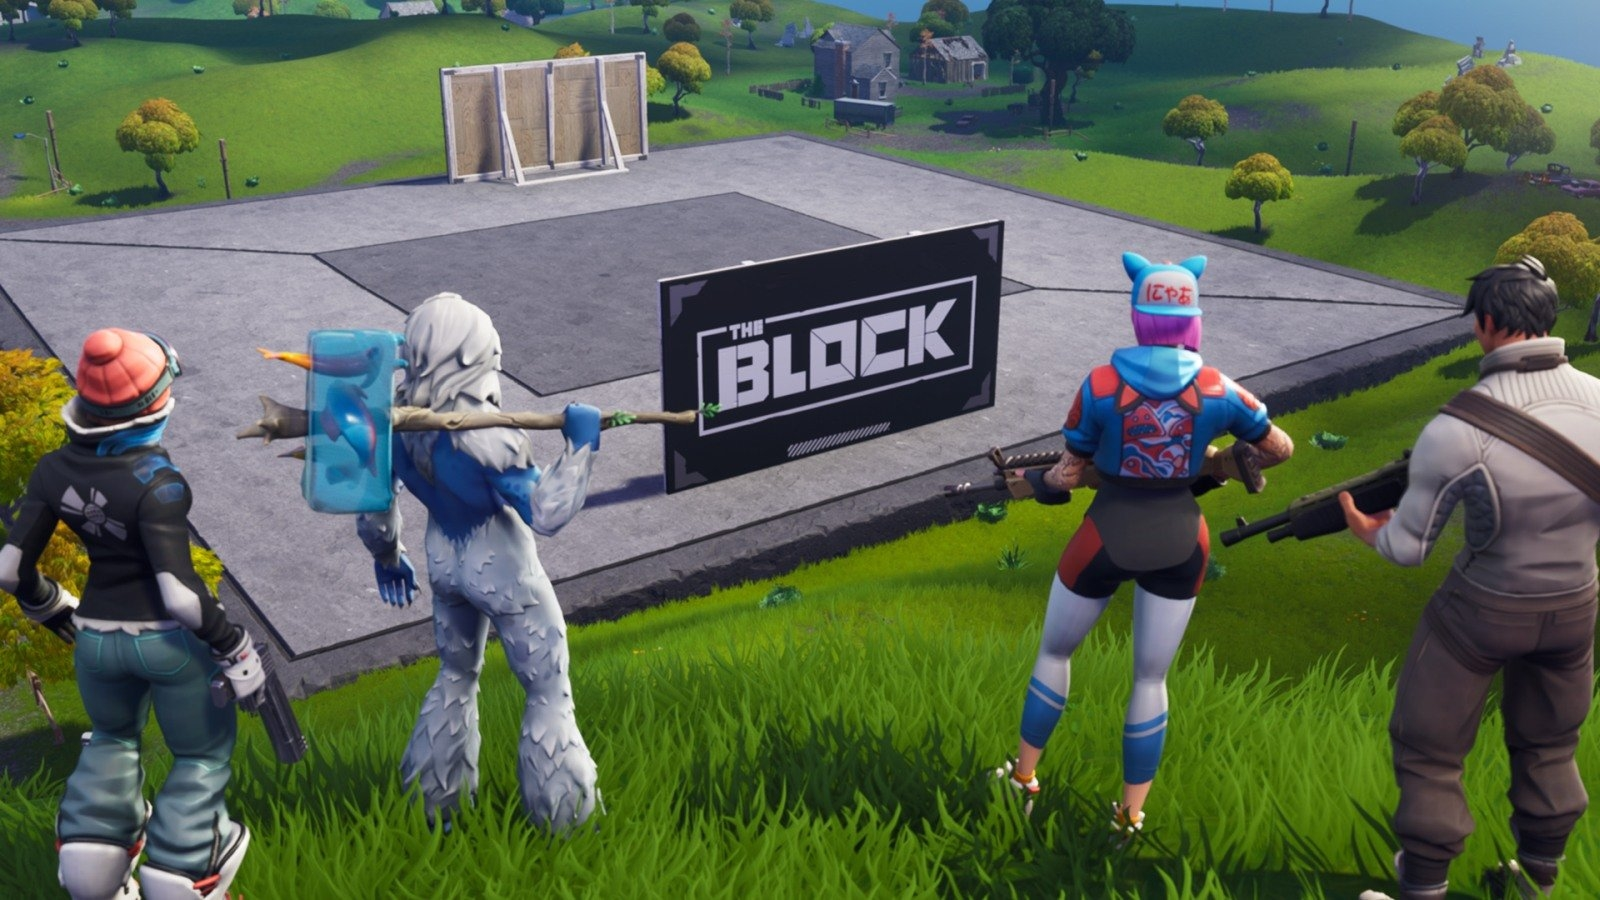 'Fortnite' launched 'The Block' live in-game during The Game Awards   DeviceDaily.com